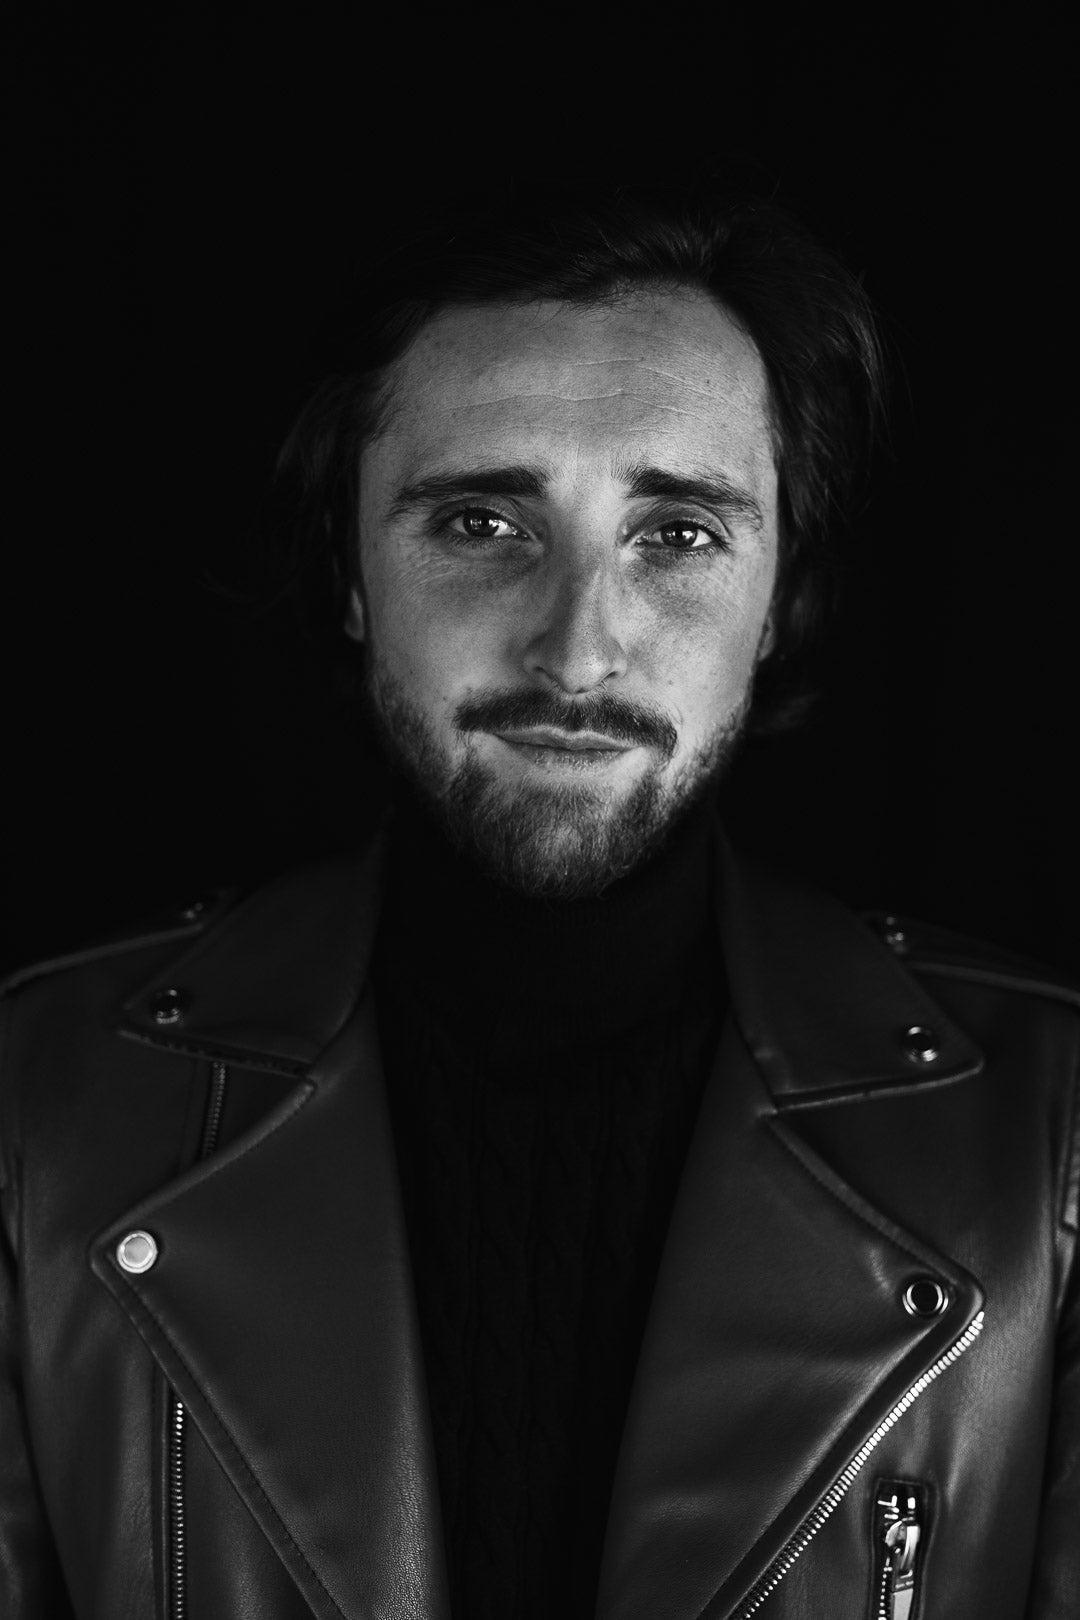 Black and white portrait of a man wearing a leather jacket